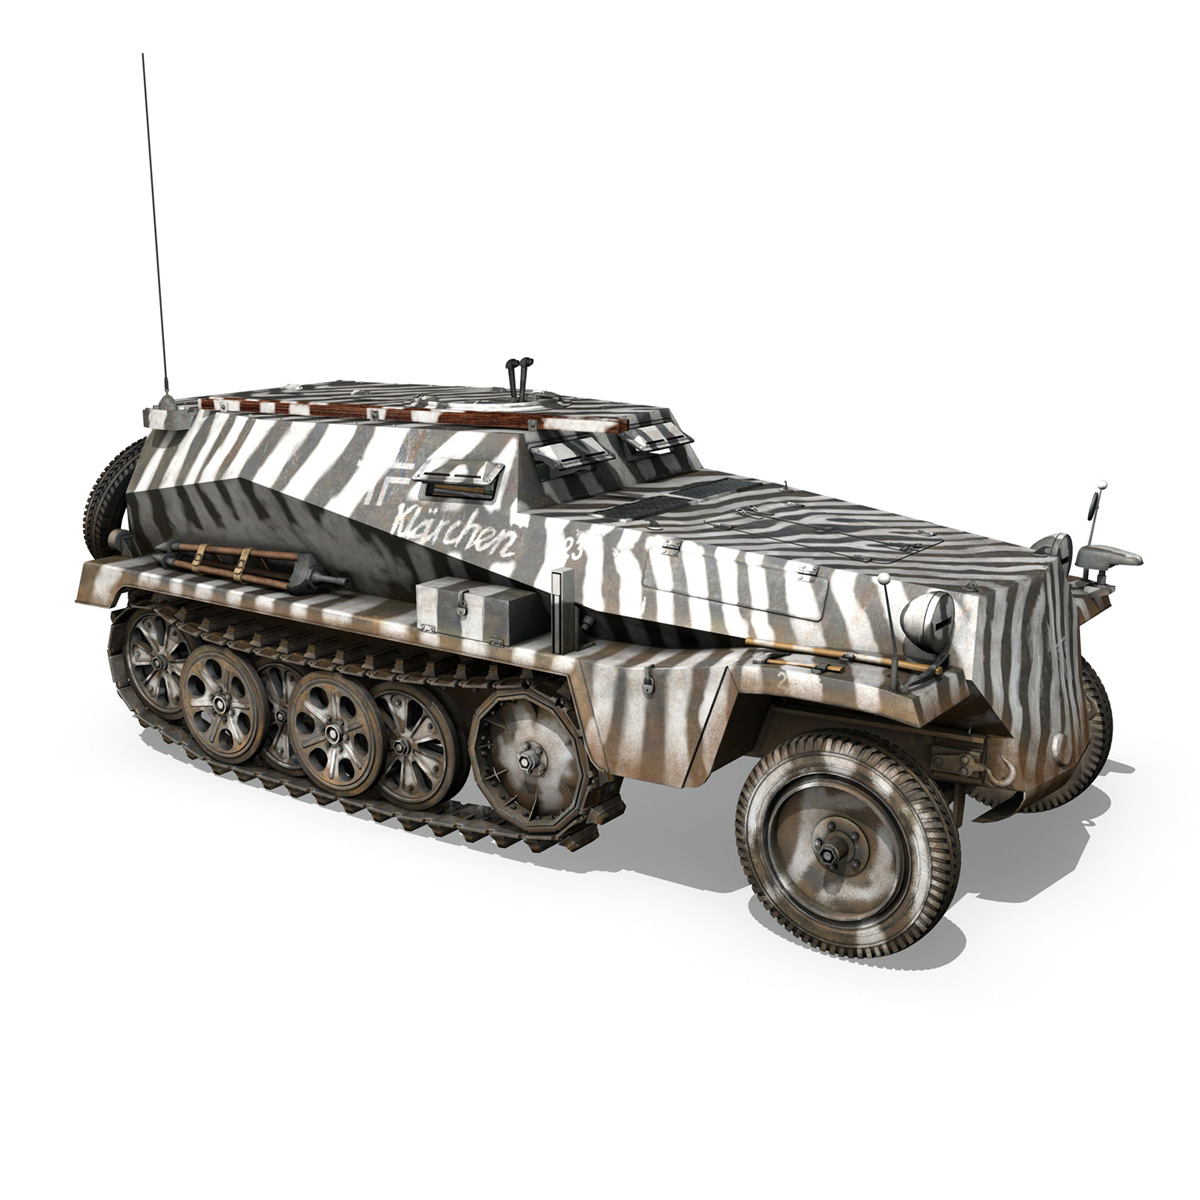 sdkfz.253 – beob.pz.wg. – observation vehicle 3d model 3ds fbx c4d lwo obj 269033